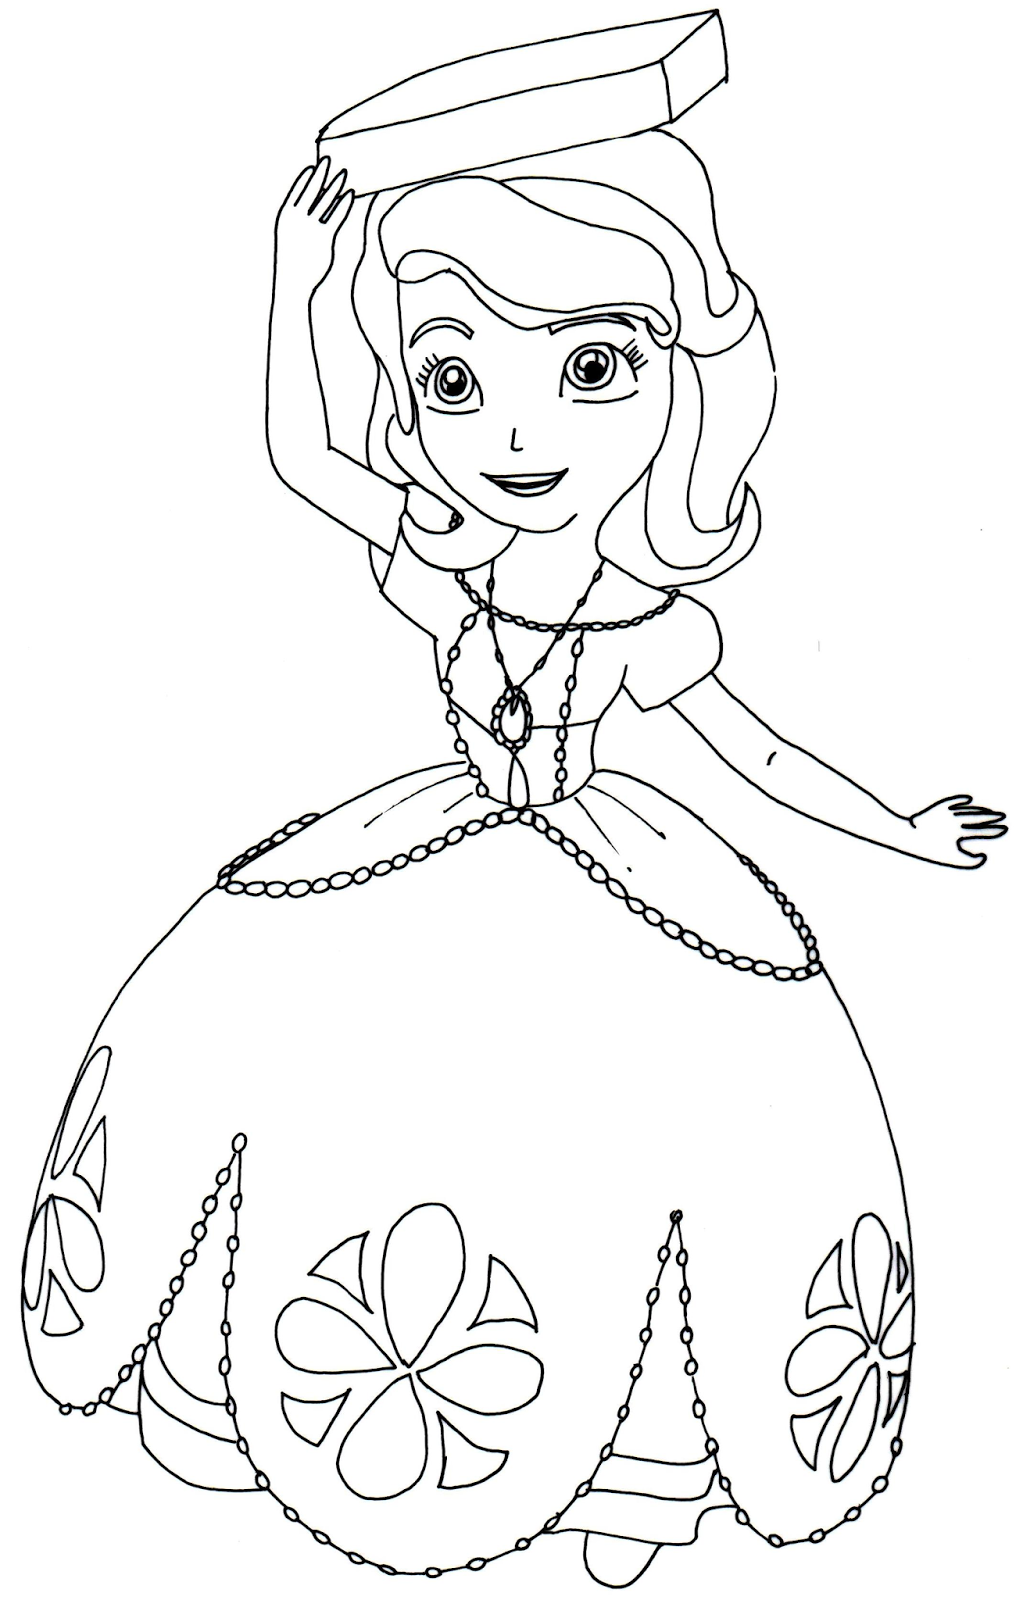 Sofia The First Coloring Pages: Perfect Posture - Sofia ...